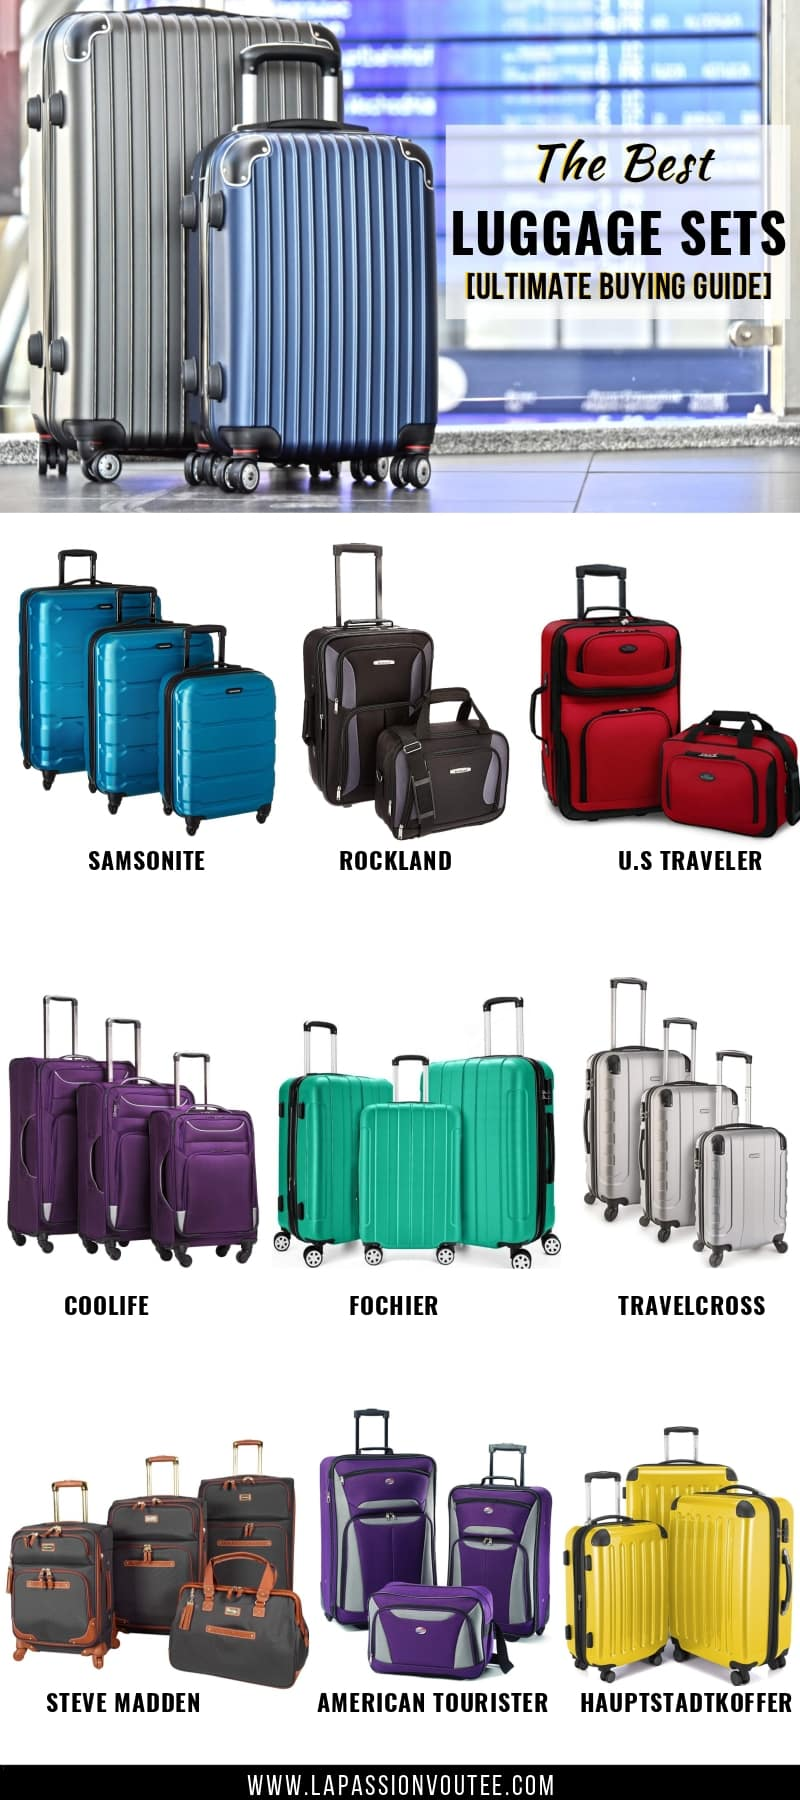 A complete review of the best luggage sets of 2019. Everything from the best 2 piece luggage set, the best, 3 piece luggage sets and even the best carry on luggage set to get on Amazon. This luggage buying guide includes brands such as Samsonite, Rockland, U.S Traveler, Coolife, Dochier, Travelcross, Steve Madden, American Tourister, and Hauptstadtkoffer. Get the best cheap luggage sets without breaking the bank.